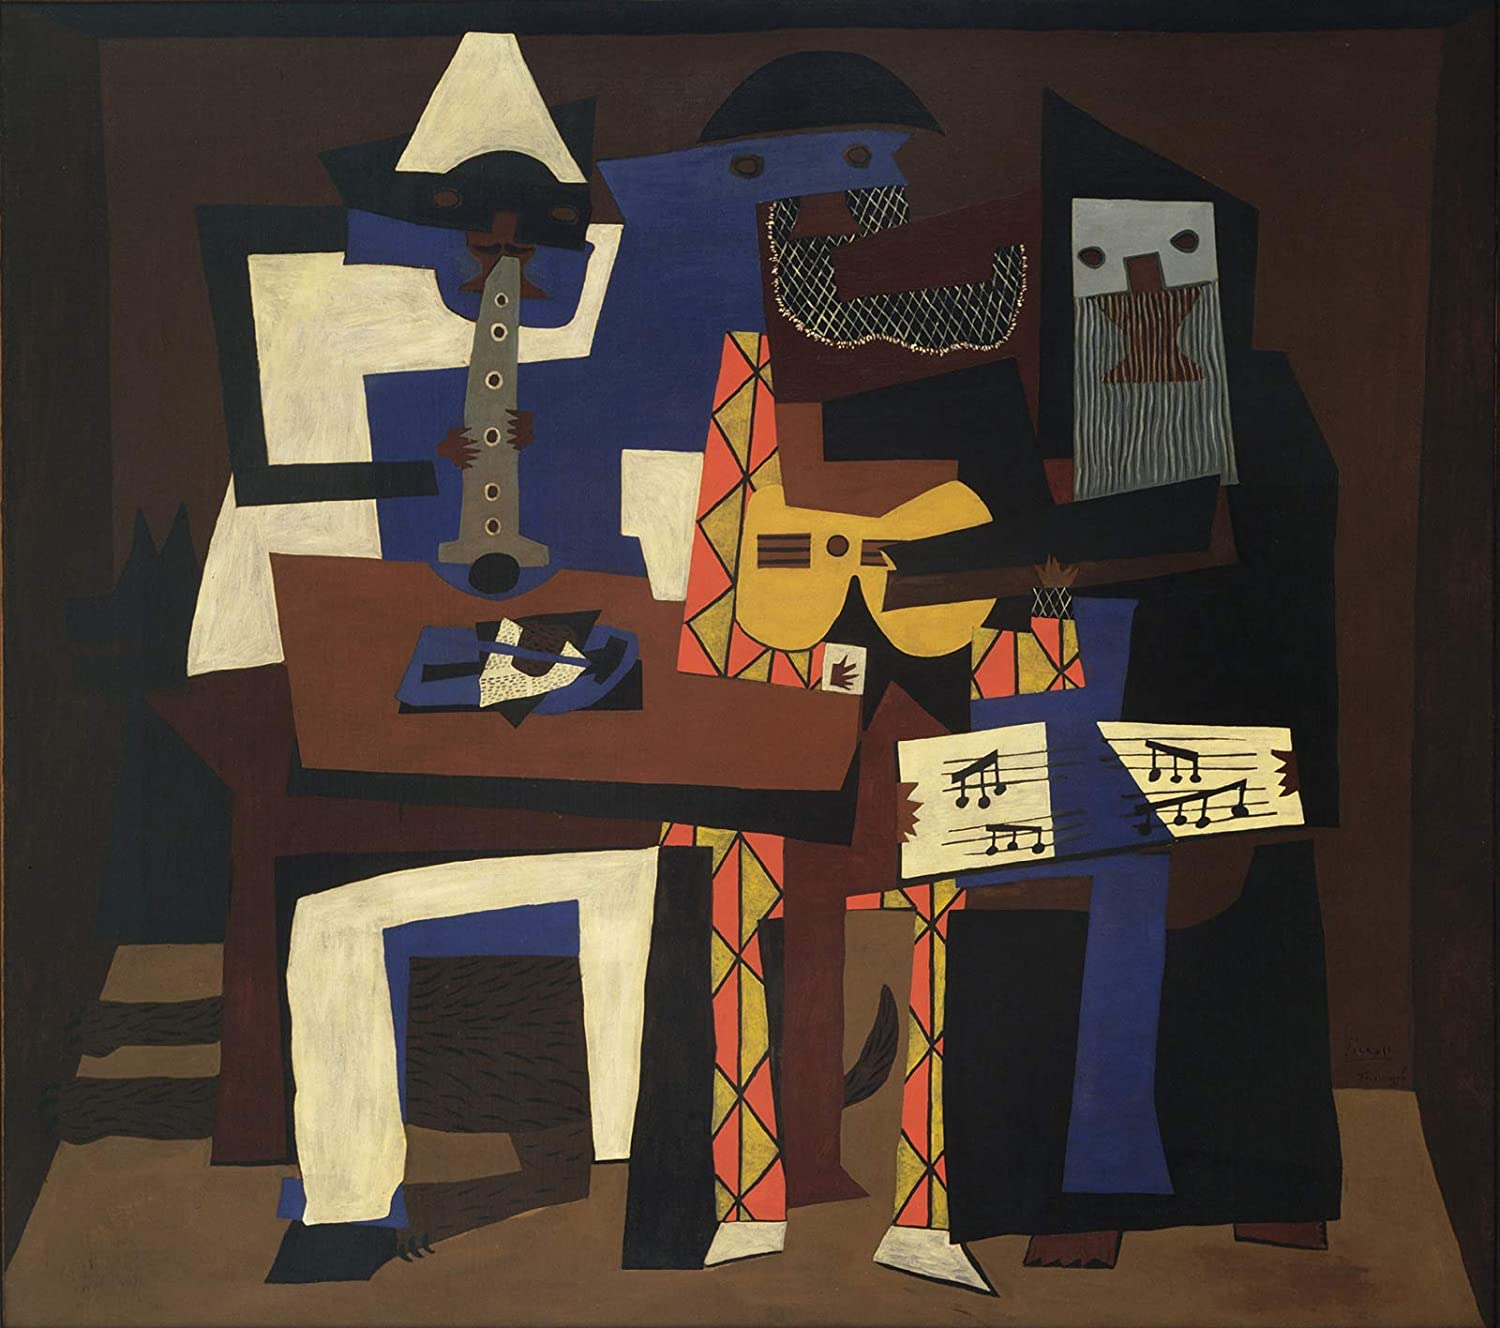 Amazon Com Pablo Picasso Three Musicians 1921 Museum Of Modern Art New York 30 X 27 Fine Art Giclee Canvas Print Unframed Reproduction Posters Prints